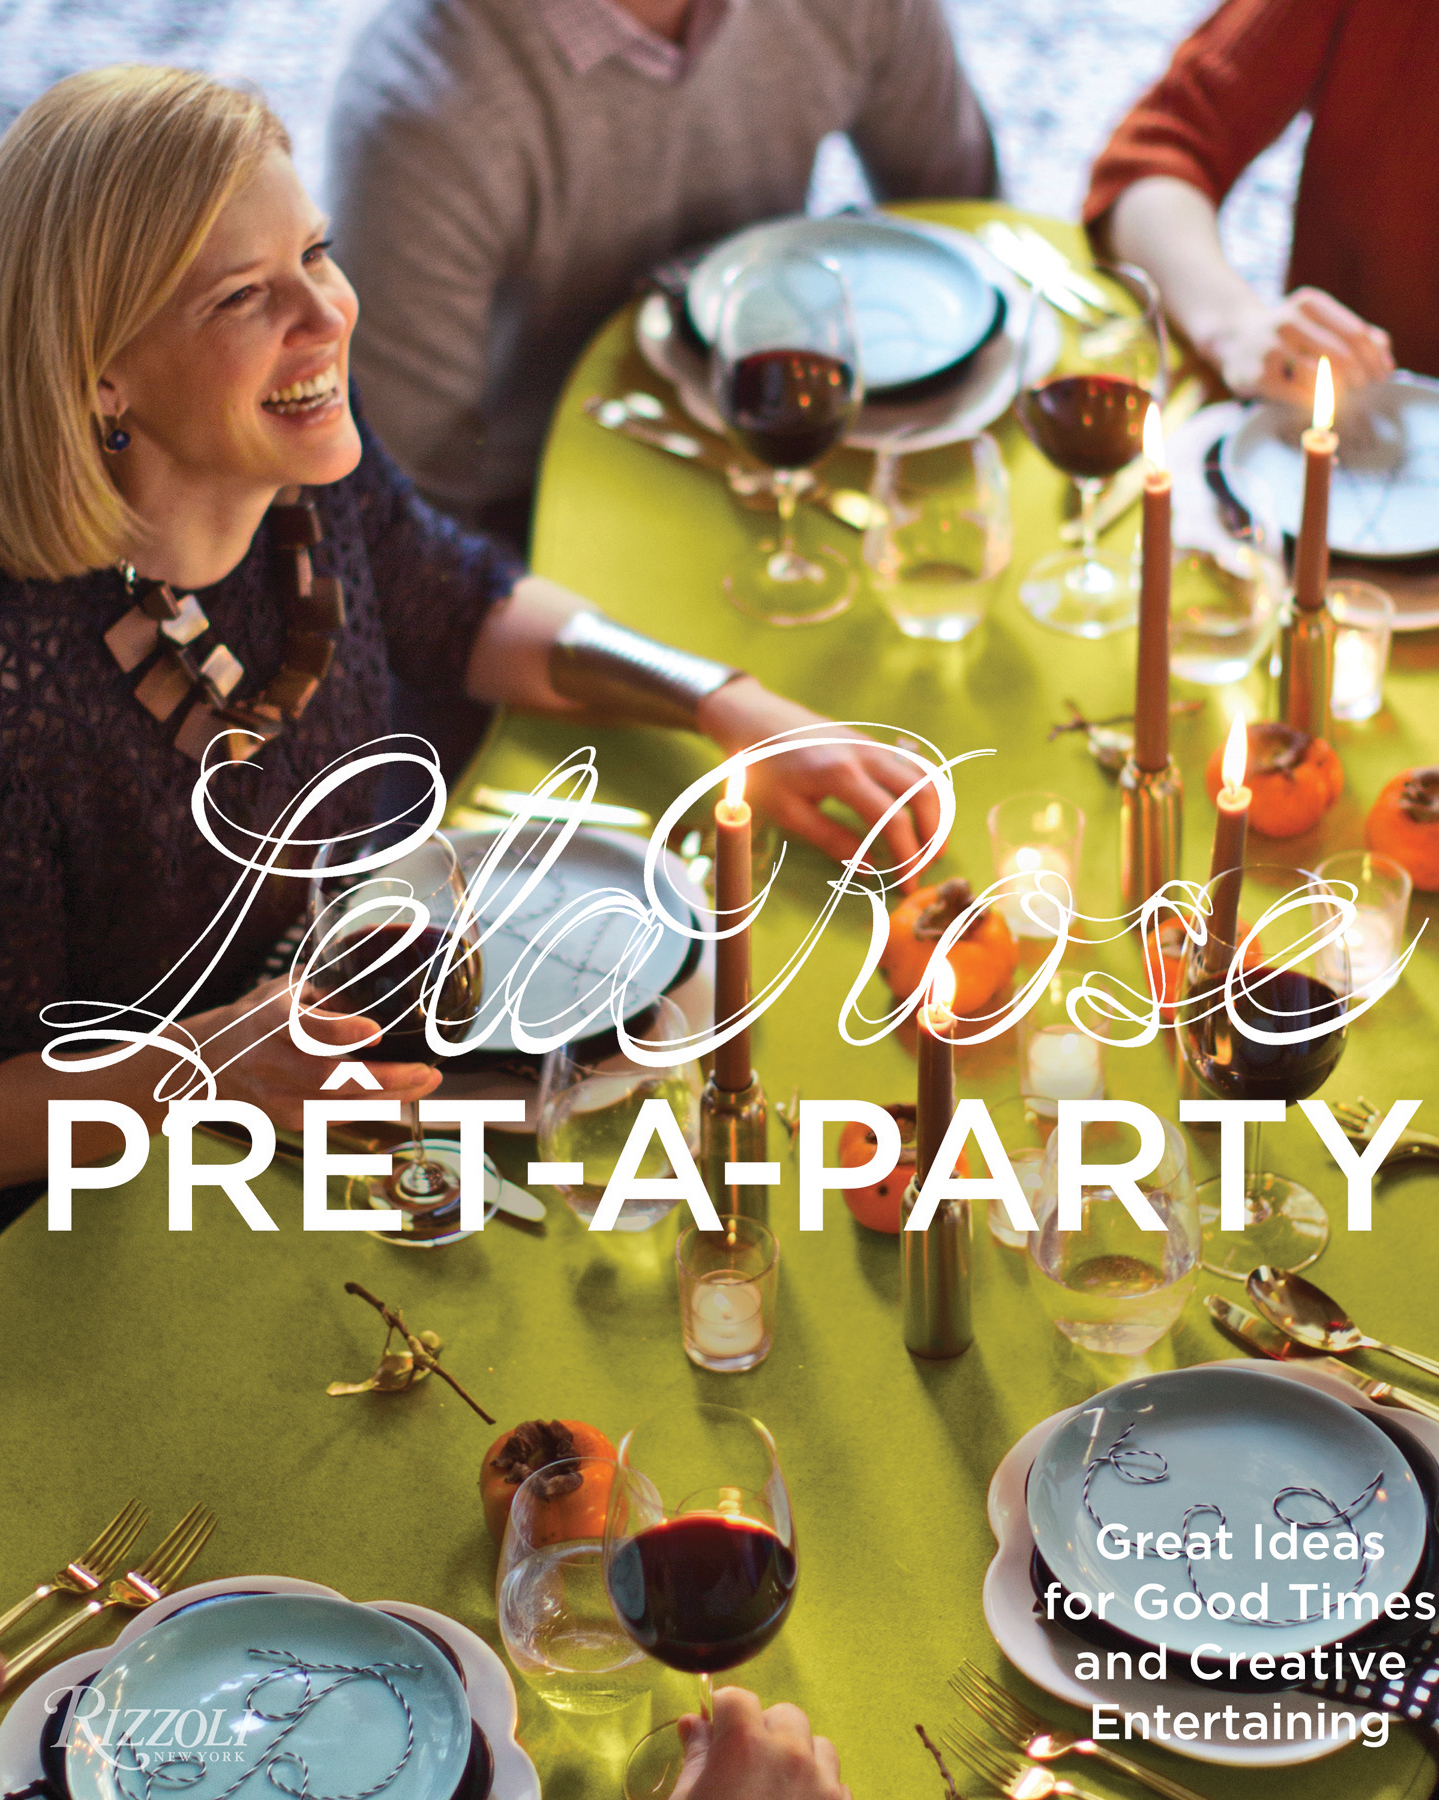 lela-rose-pret-a-party-book-launch-cover-0915.jpg